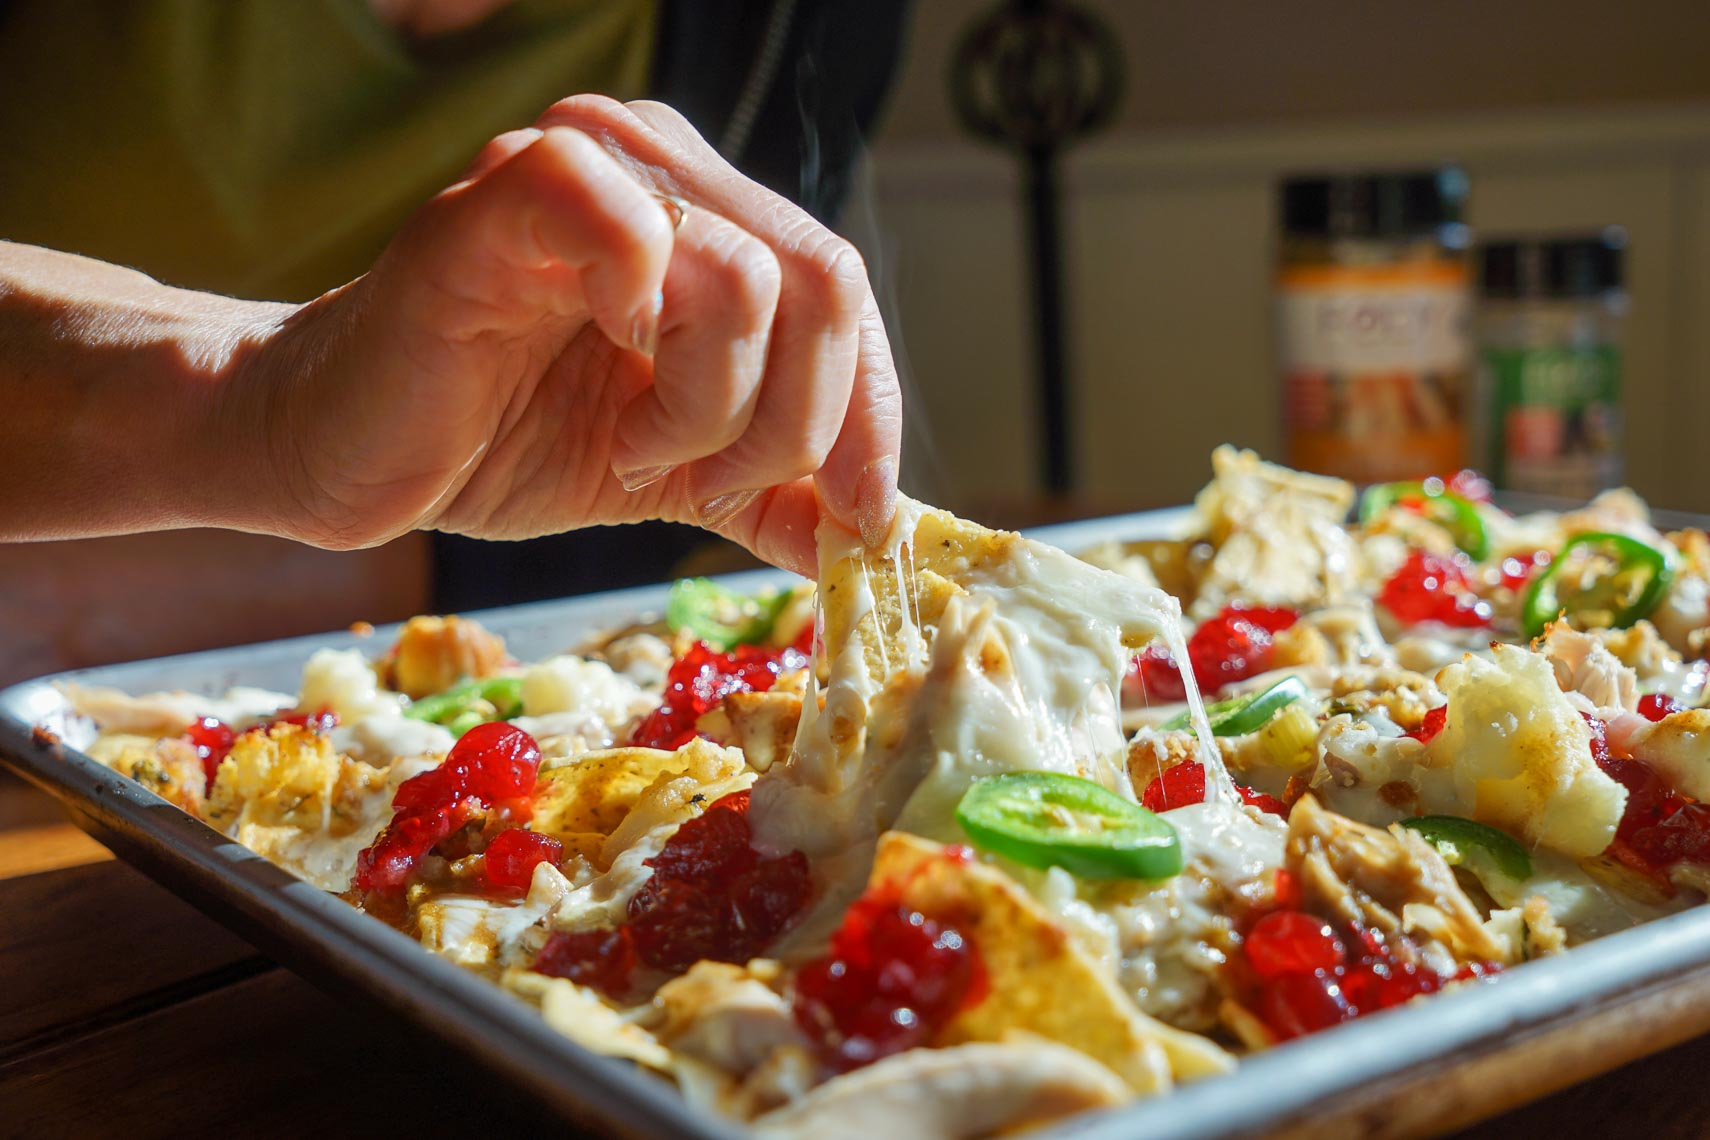 Digging in to Thanksgiving nachos fresh out of the oven withe melted cheese